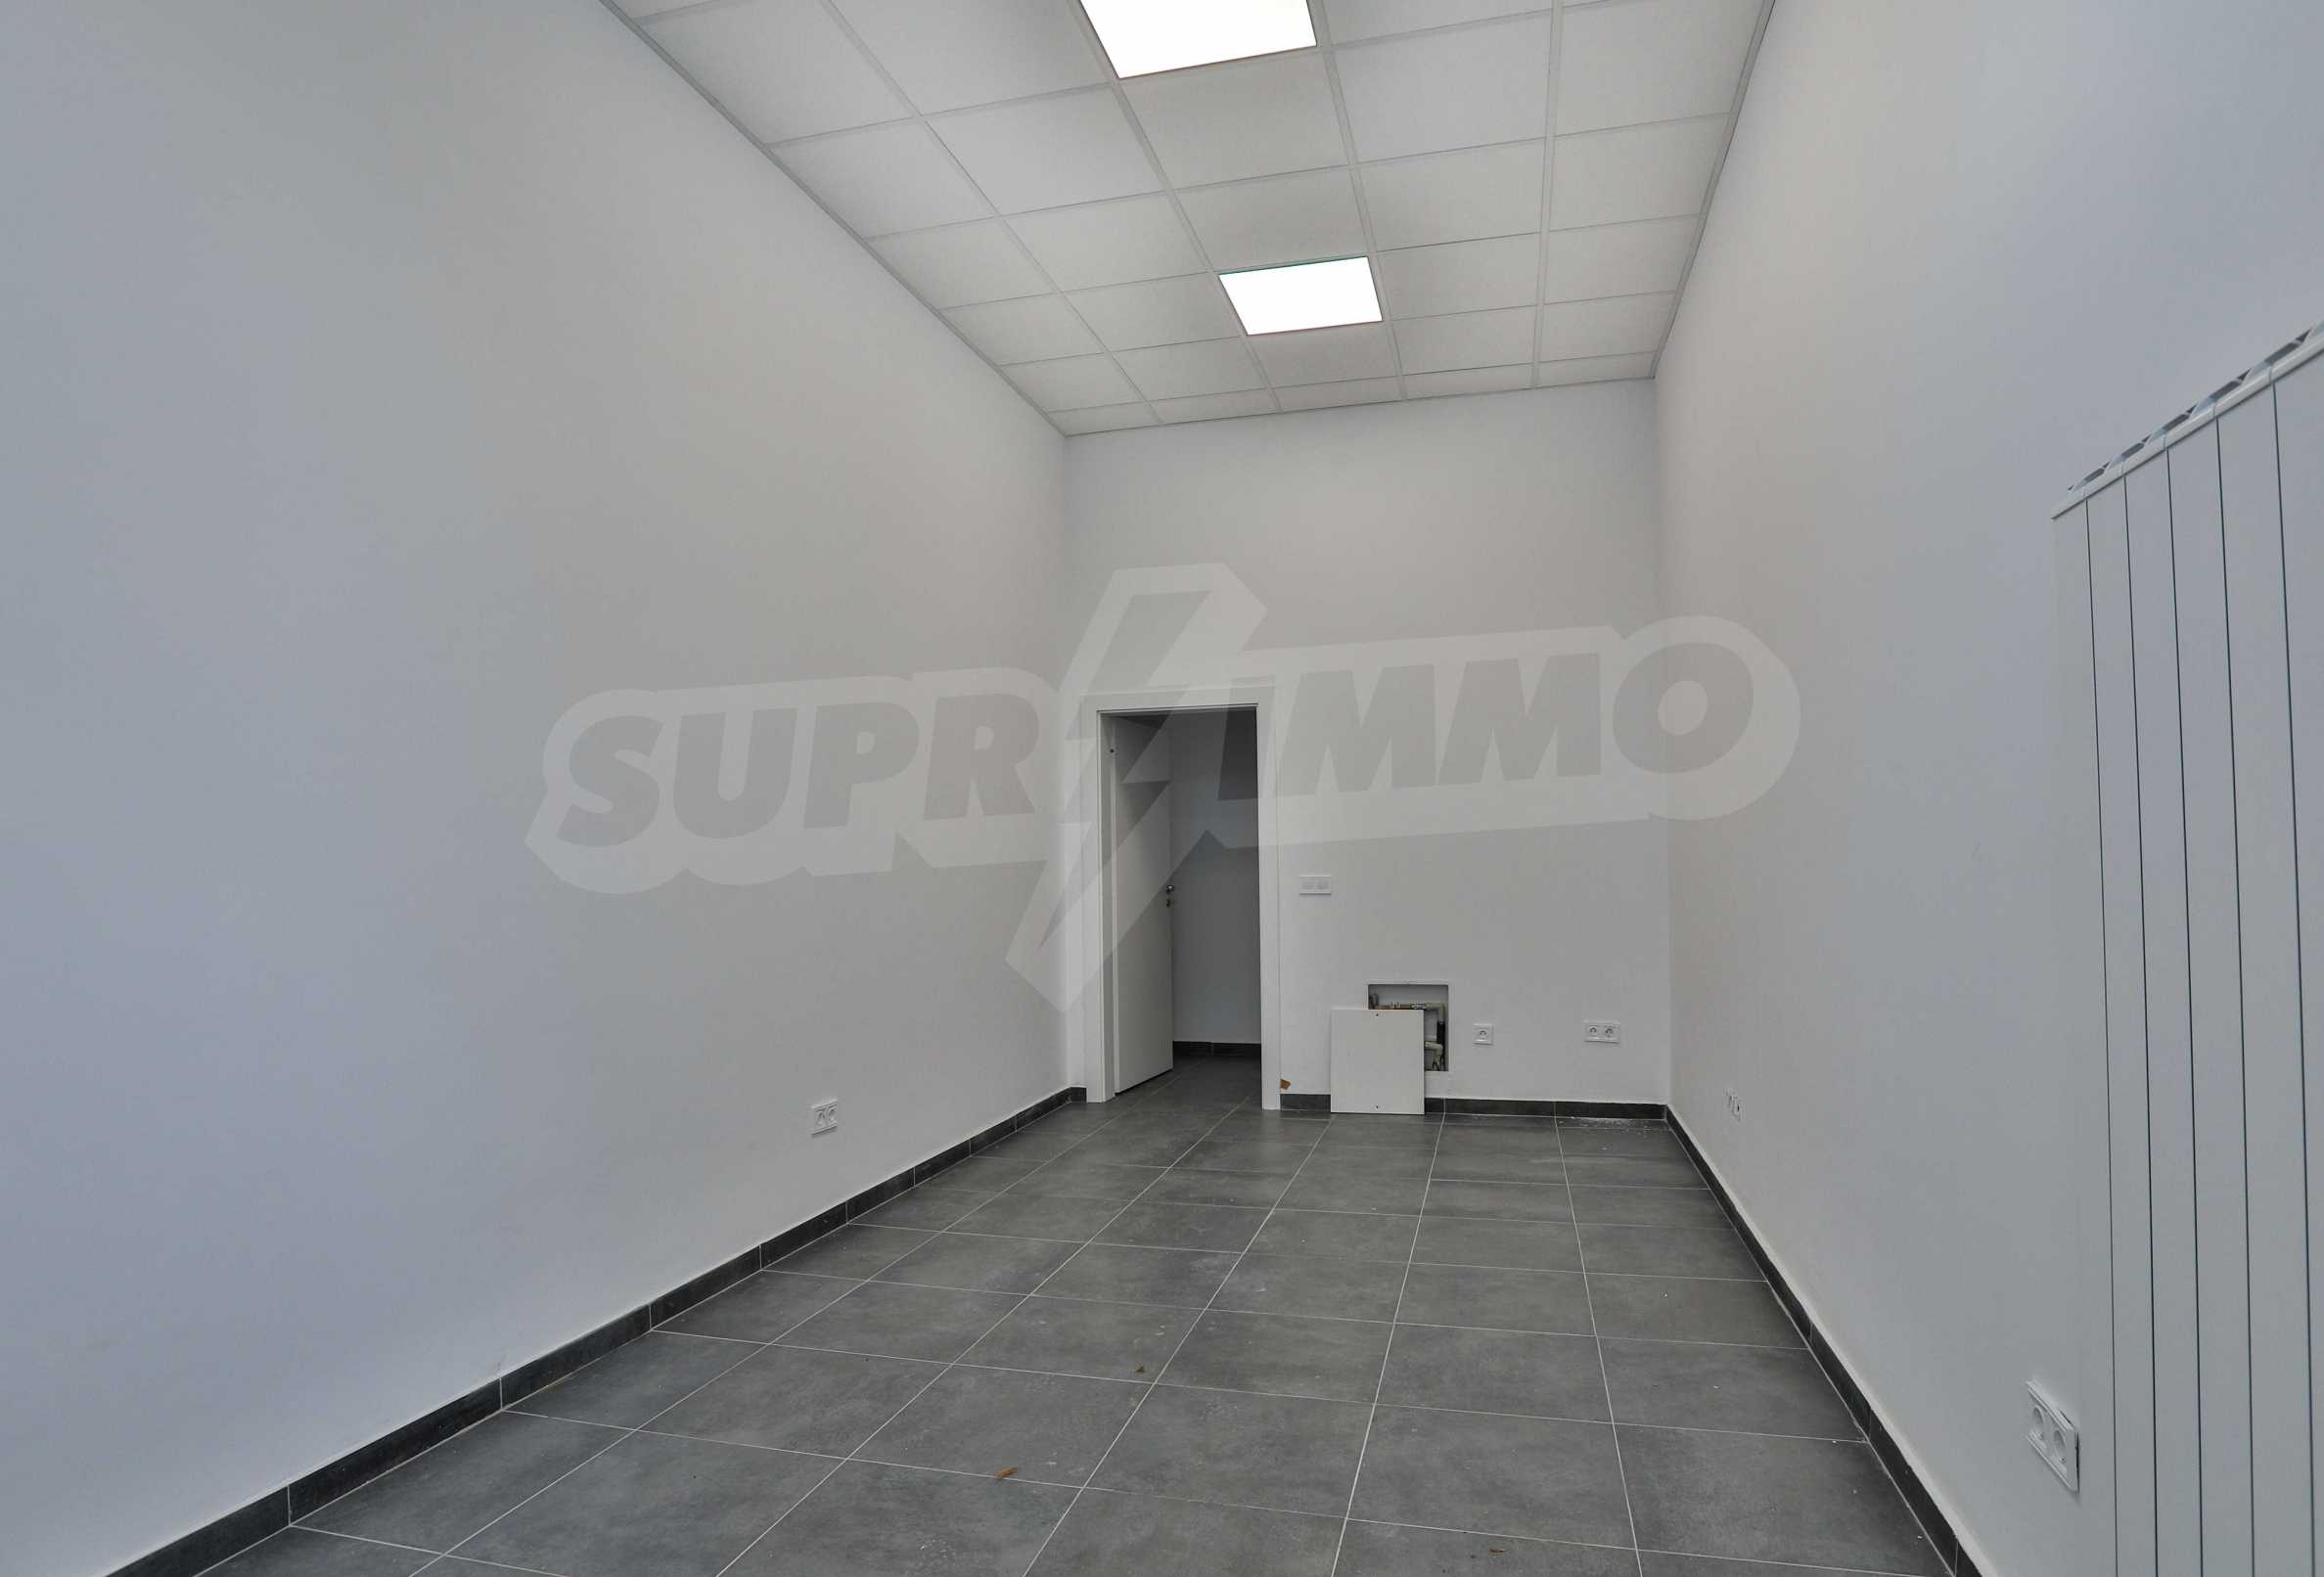 Shops, garages & parking spaces for sale in Comfort - Ovcha Kupel - new building near metro station 12